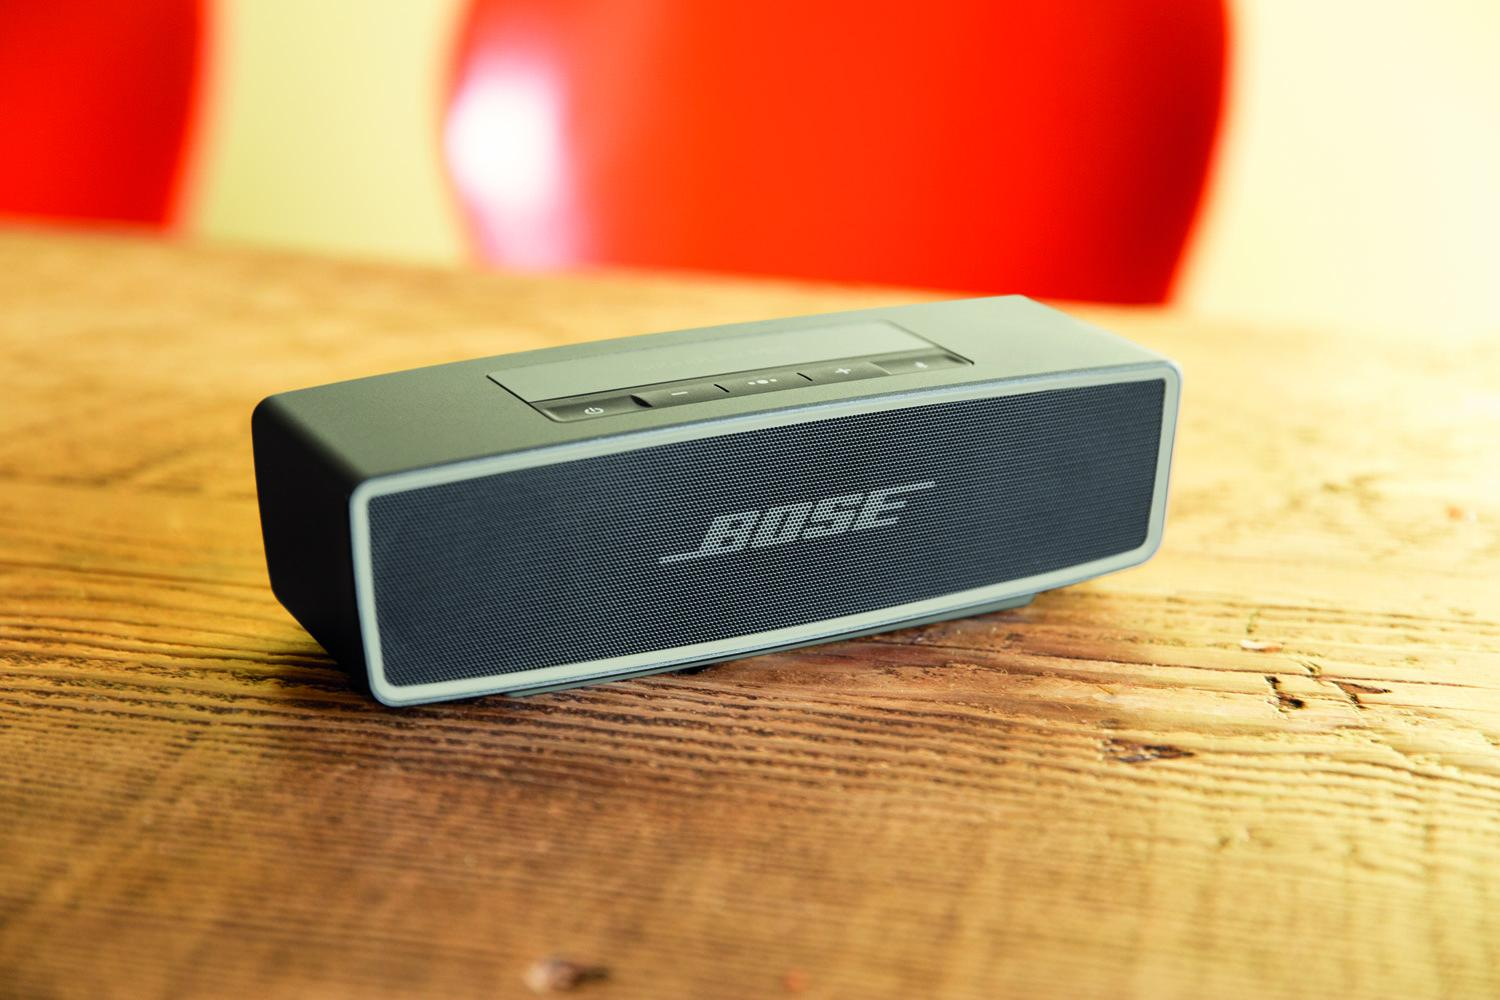 Boses speaker lineup gets another sequel in the bose soundlink boses speaker lineup gets another sequel in the bose soundlink mini ii sciox Gallery